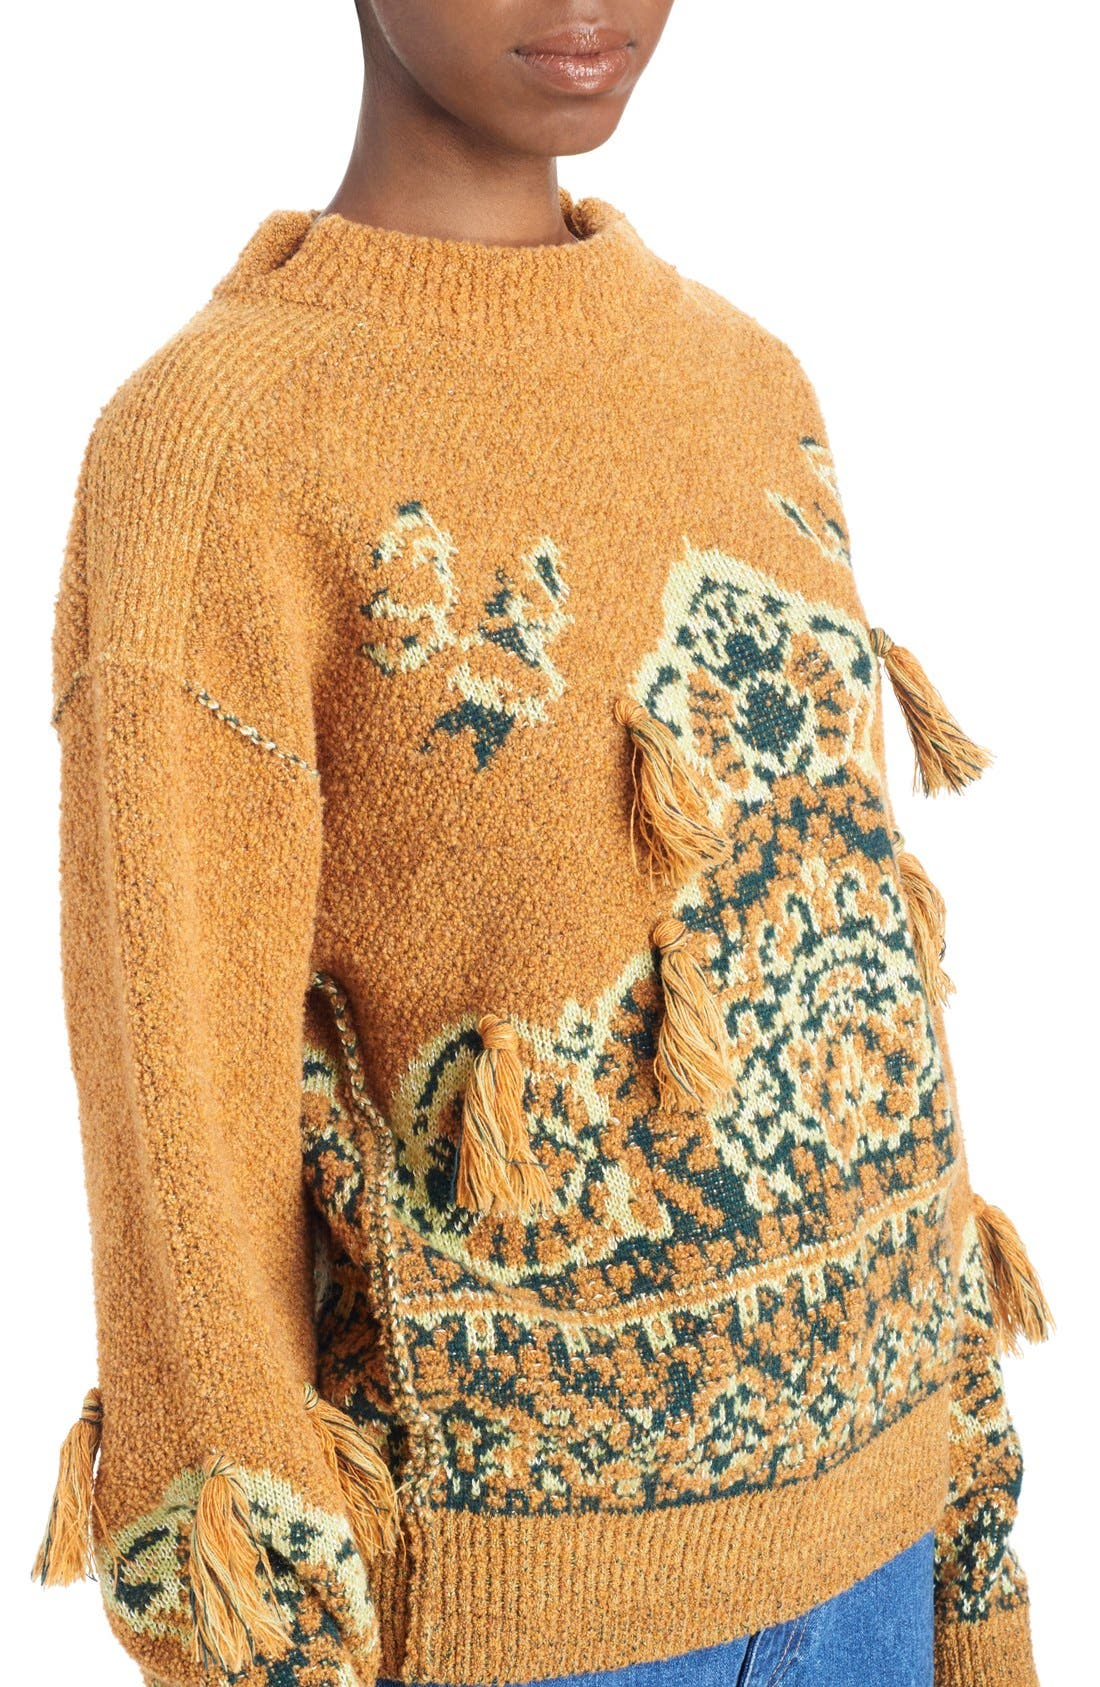 Tassel Wool Blend Sweater,                             Alternate thumbnail 5, color,                             700